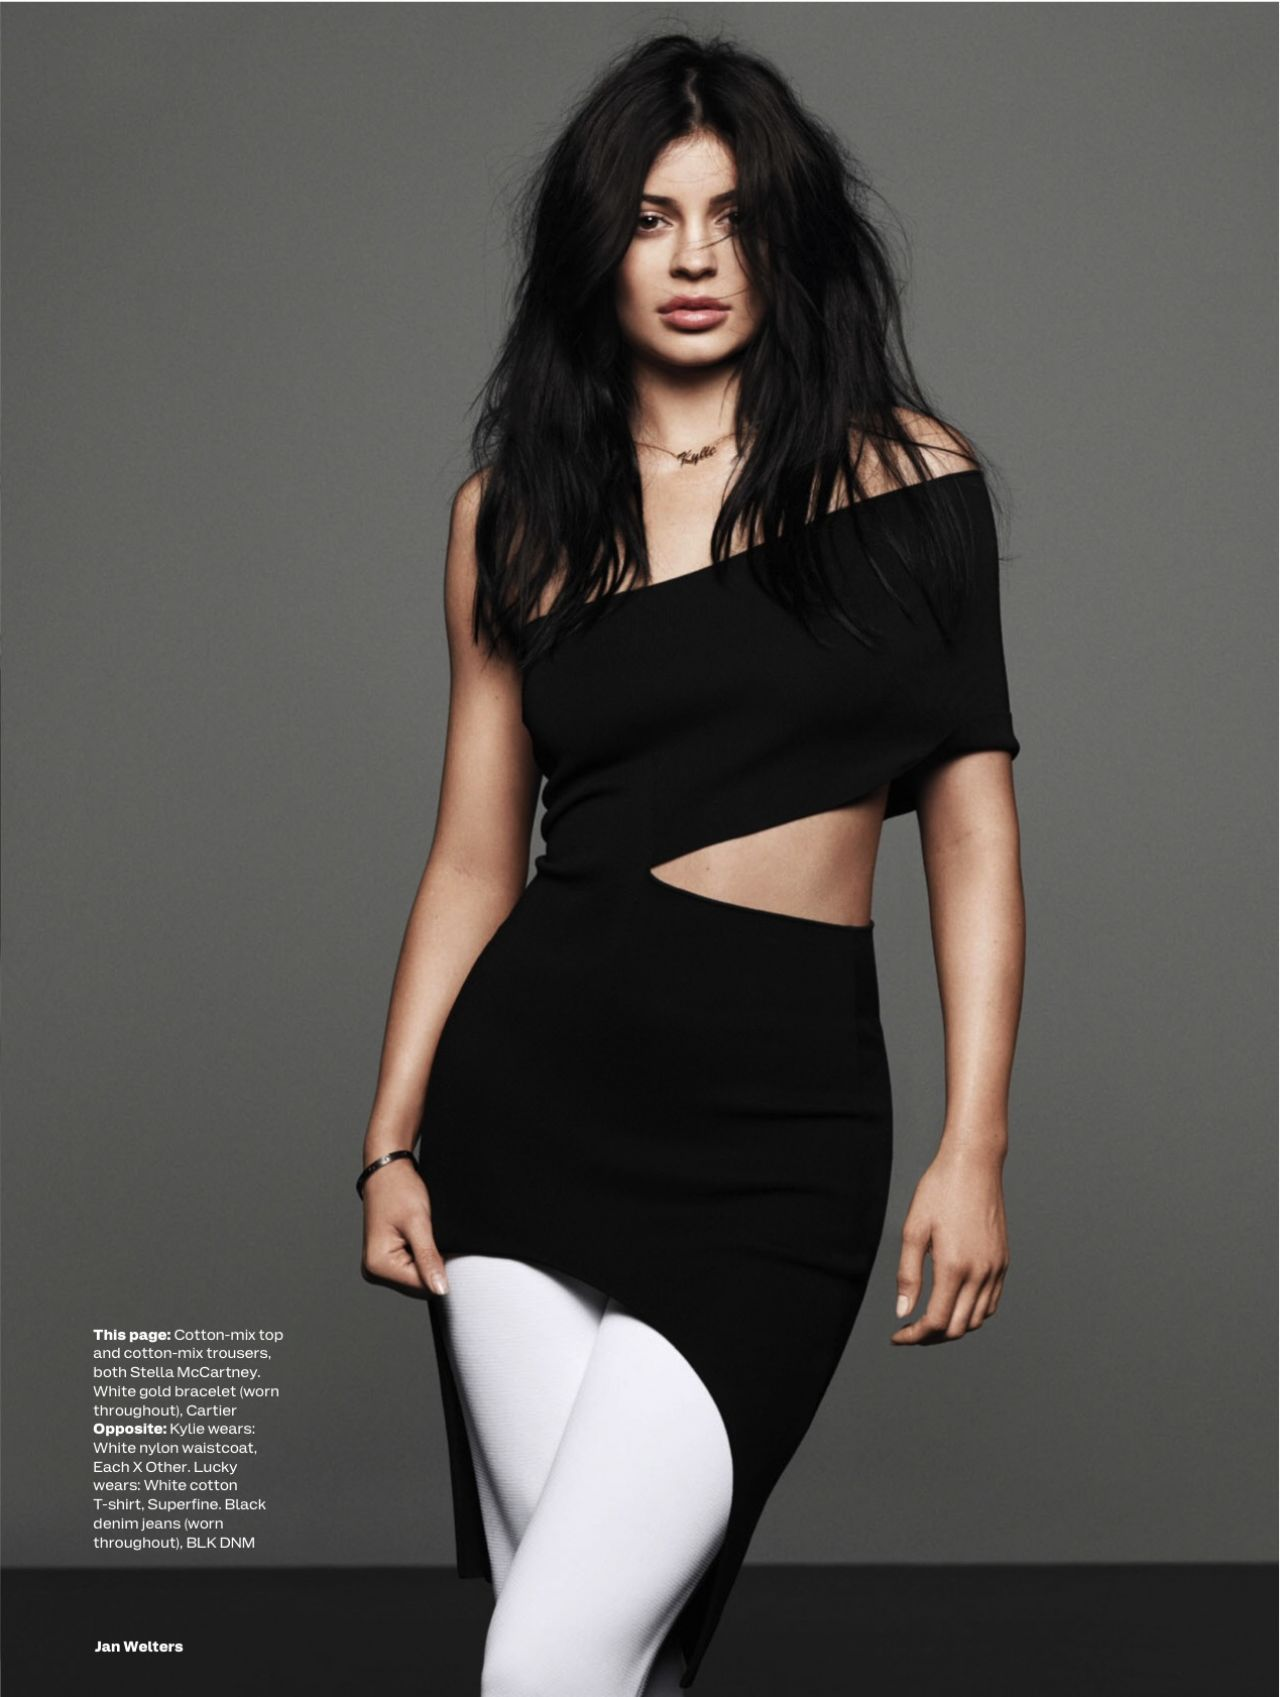 kylie jenner - photo #13